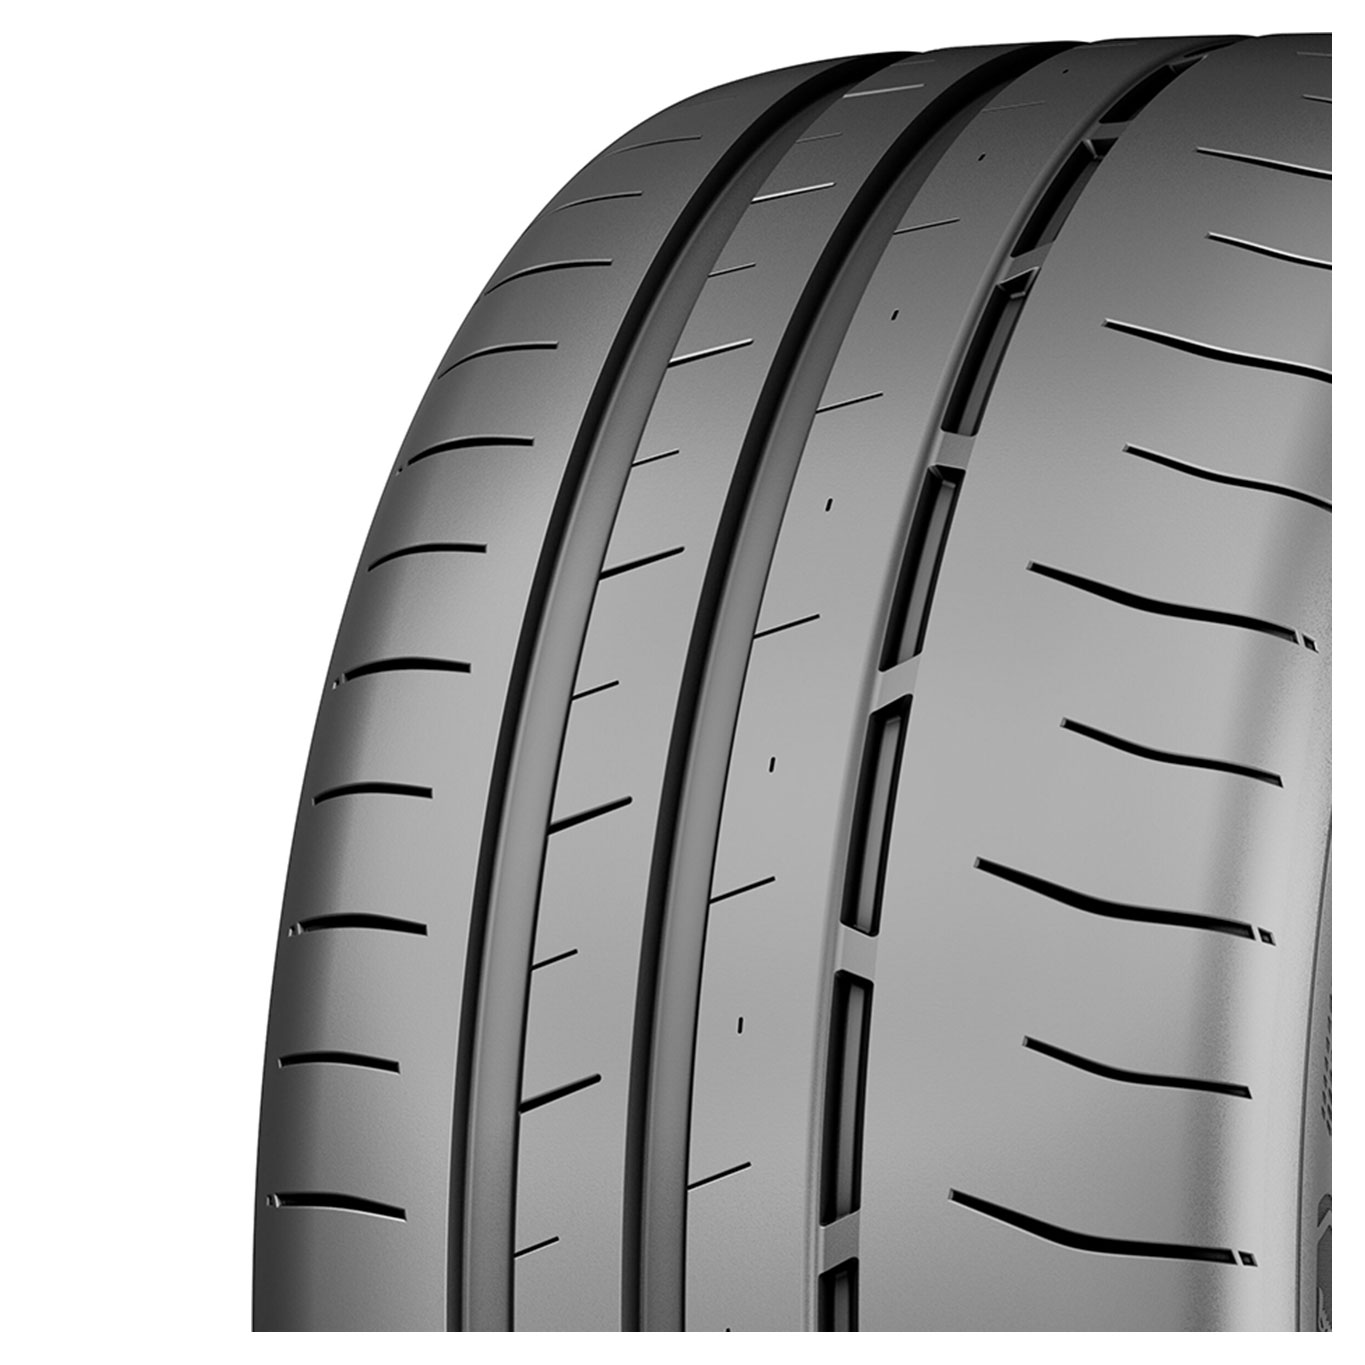 235/35 ZR19 (91Y) Eagle F1 Supersport R XL FP PC von Goodyear